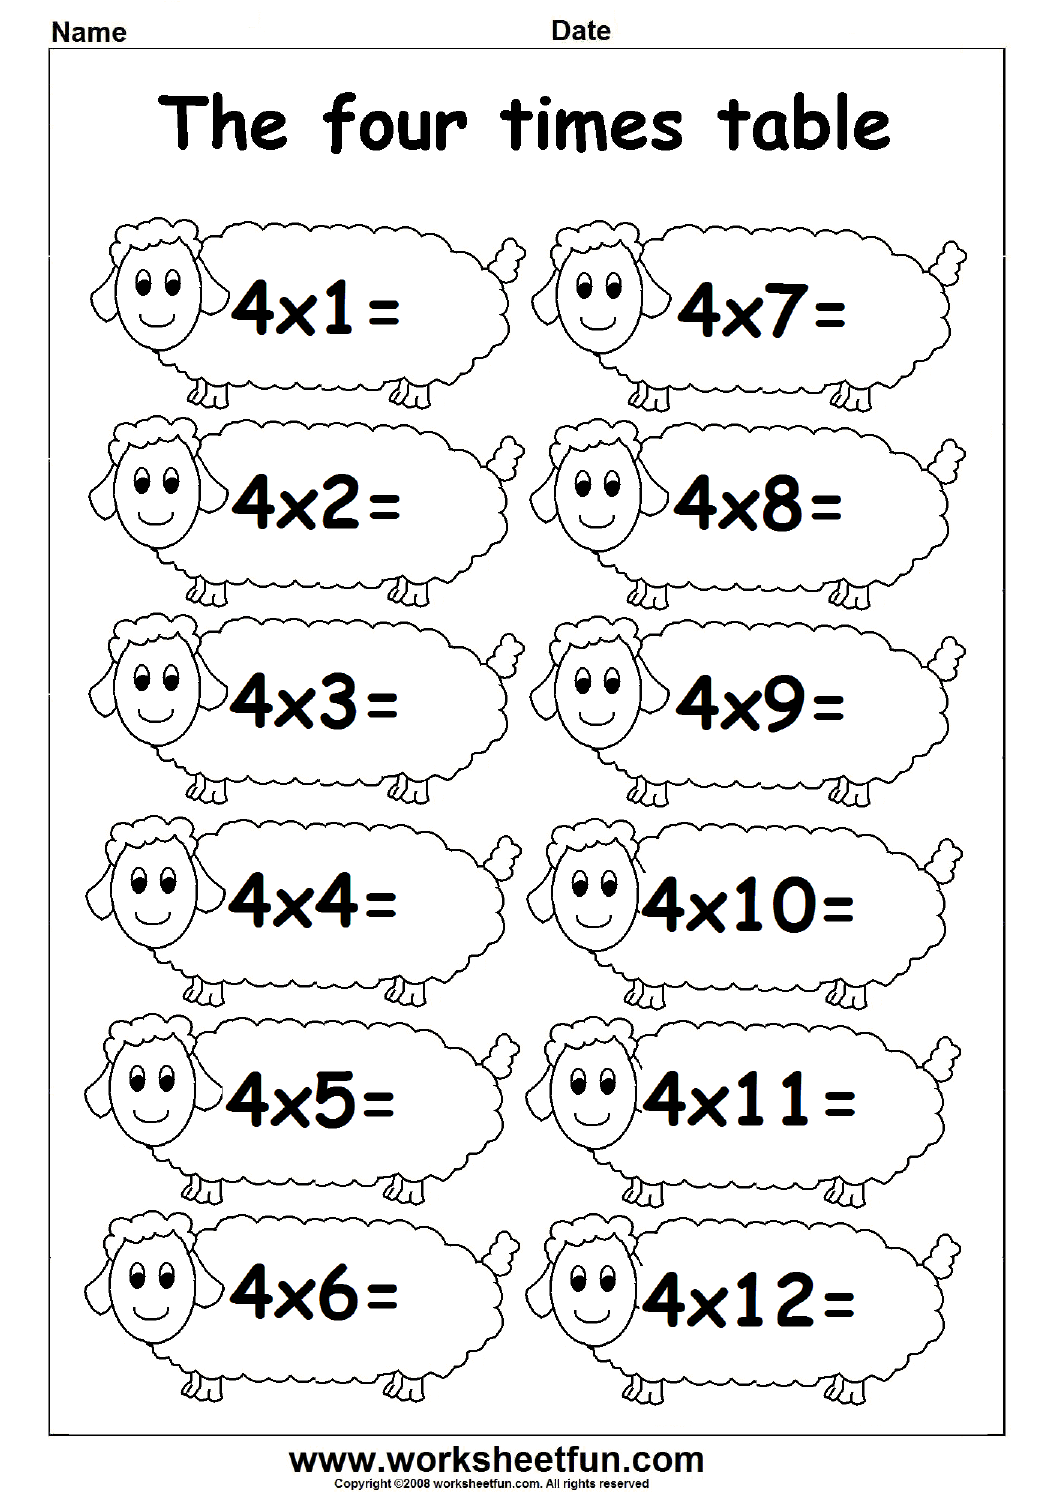 worksheet 4 Times Table Worksheet fun times table worksheets 2 3 4 printable 4